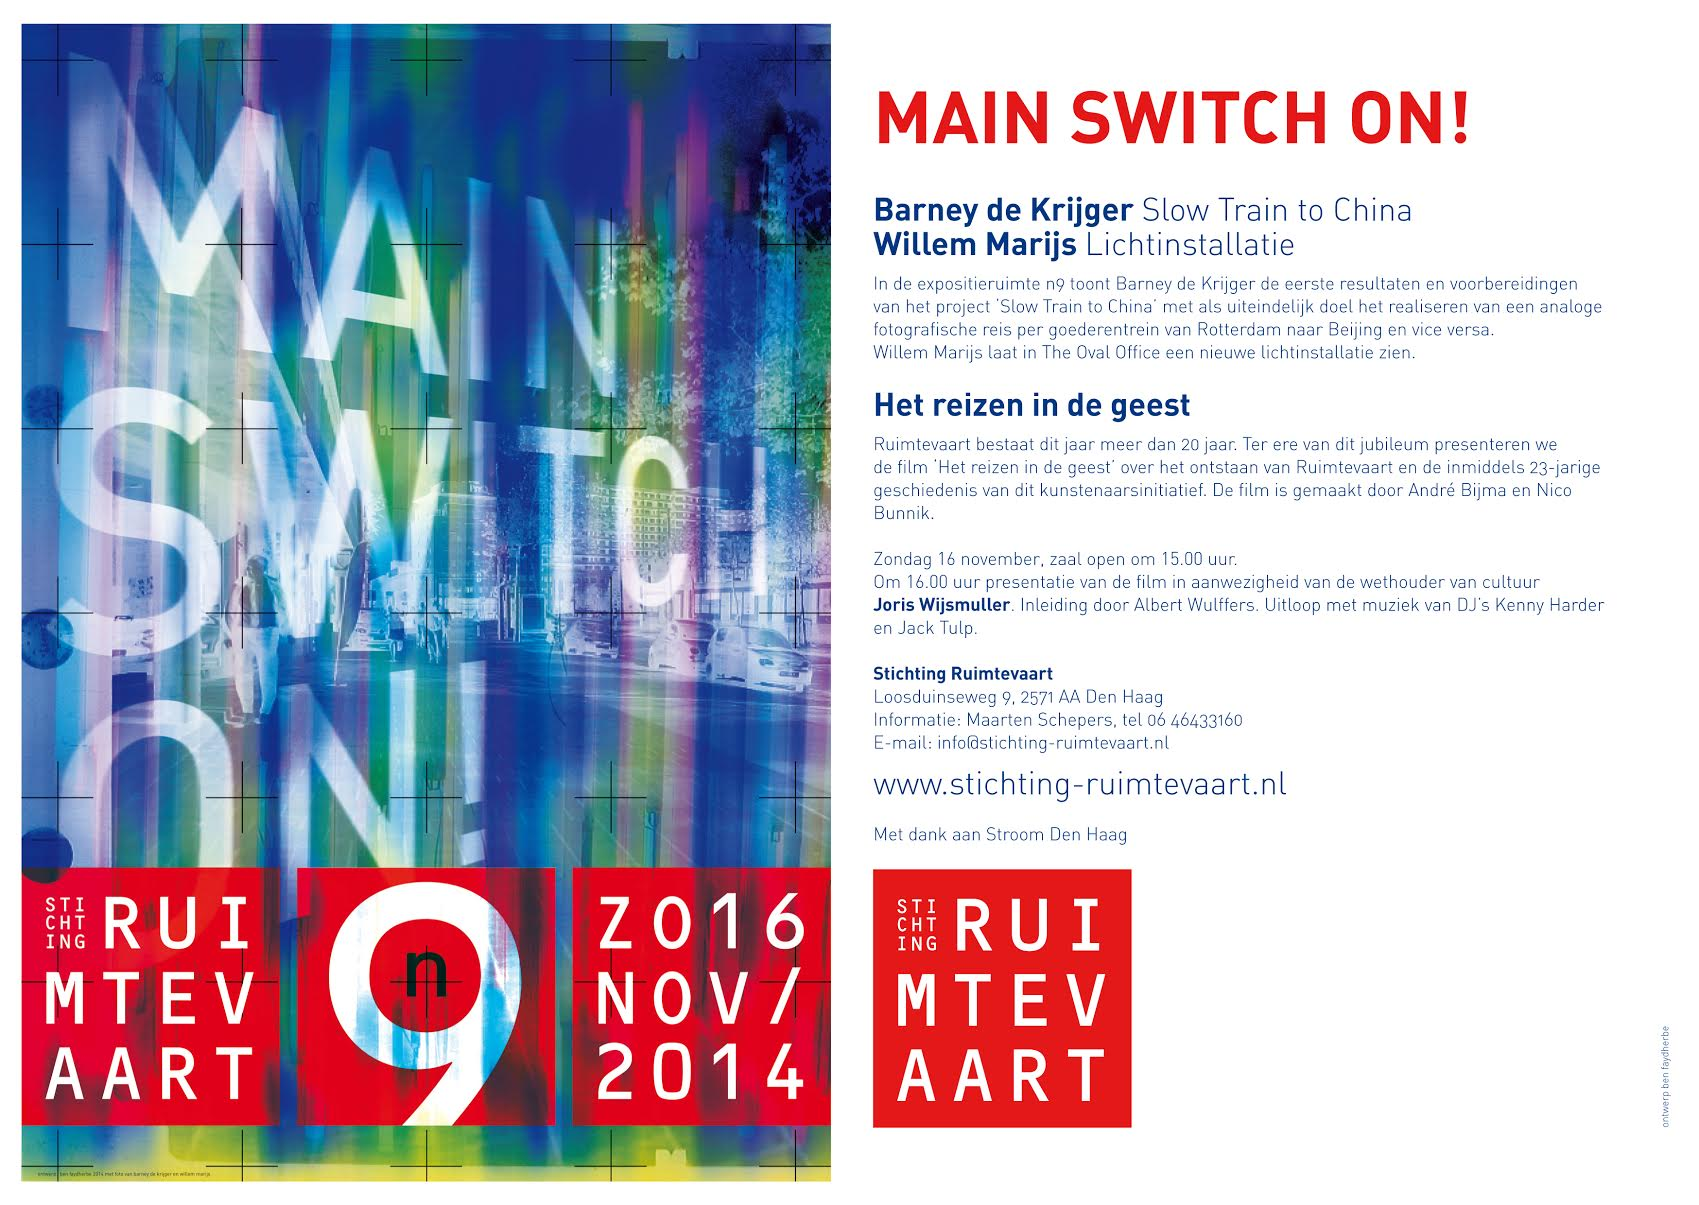 Main Switch On!